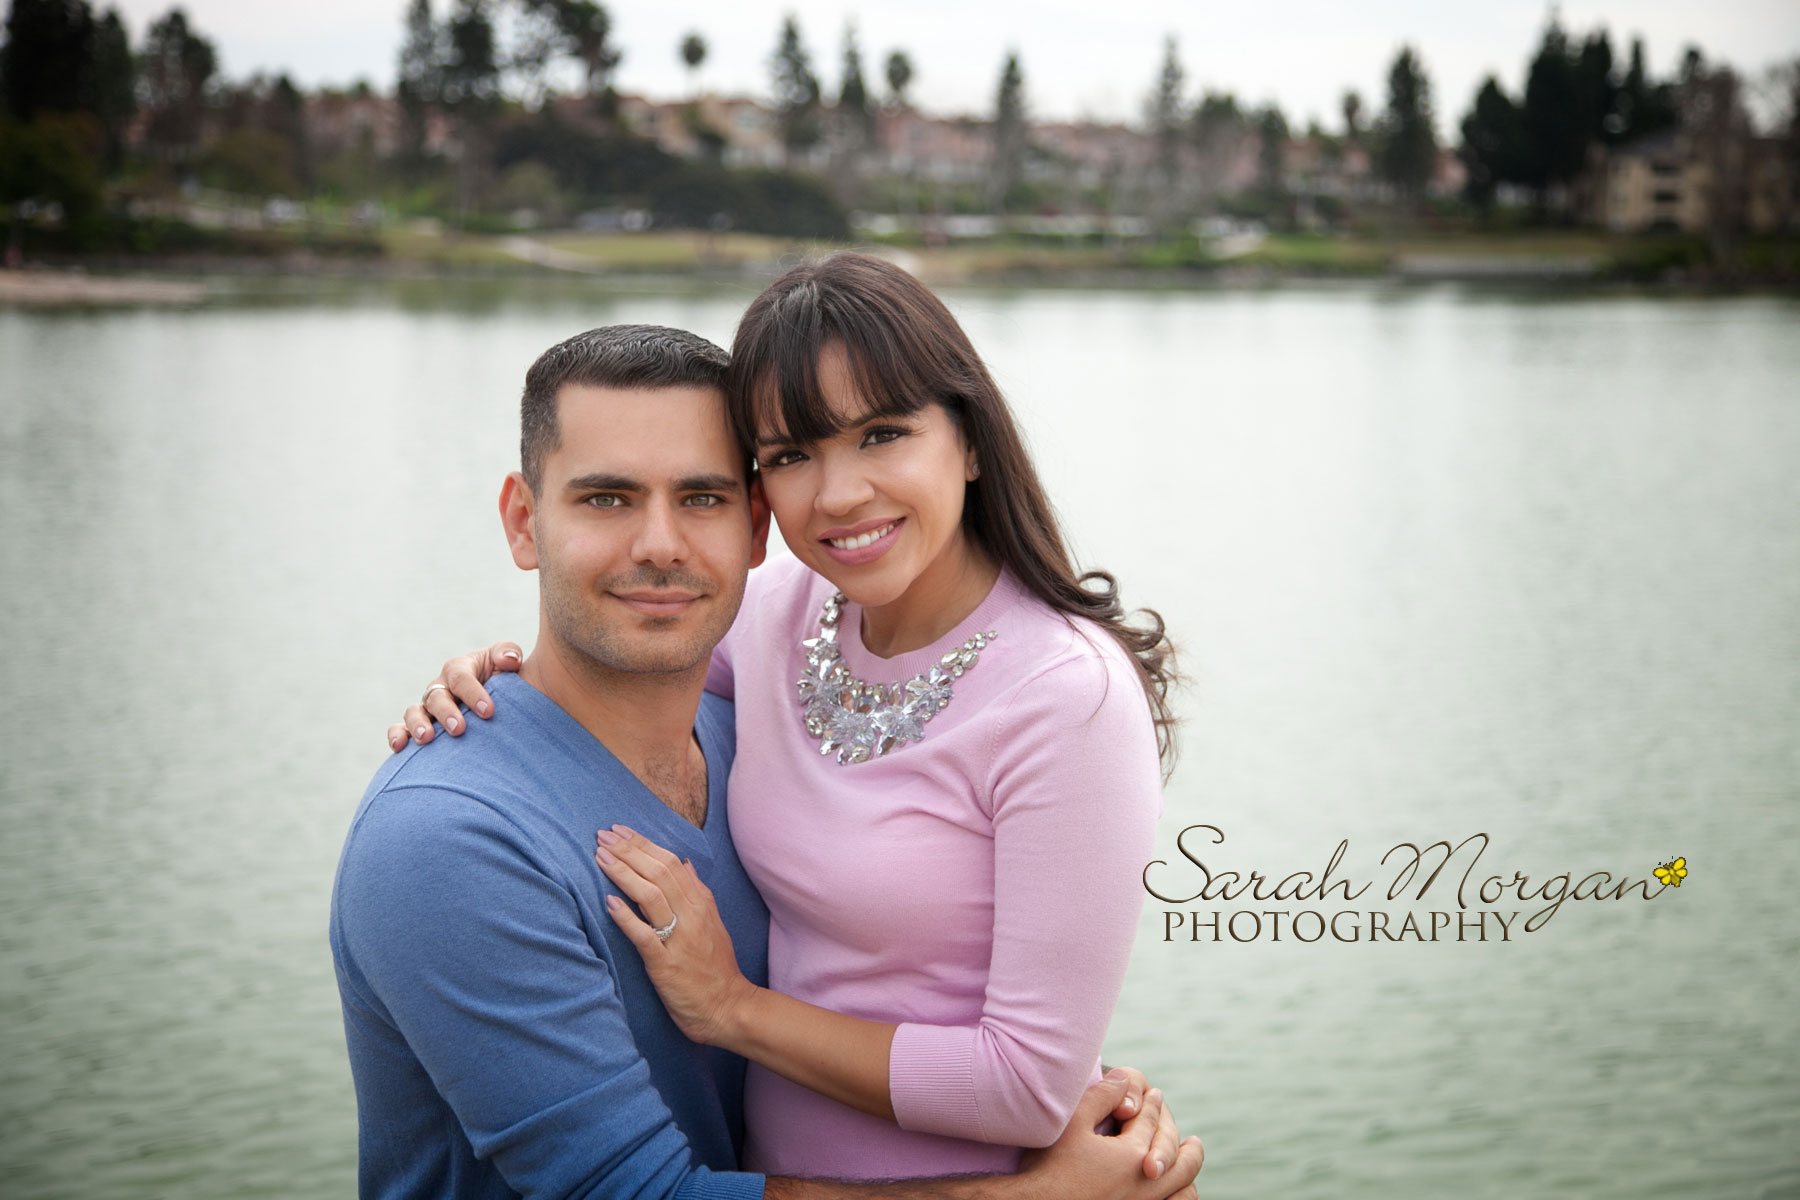 Gorgeous couple portrait - Haidao